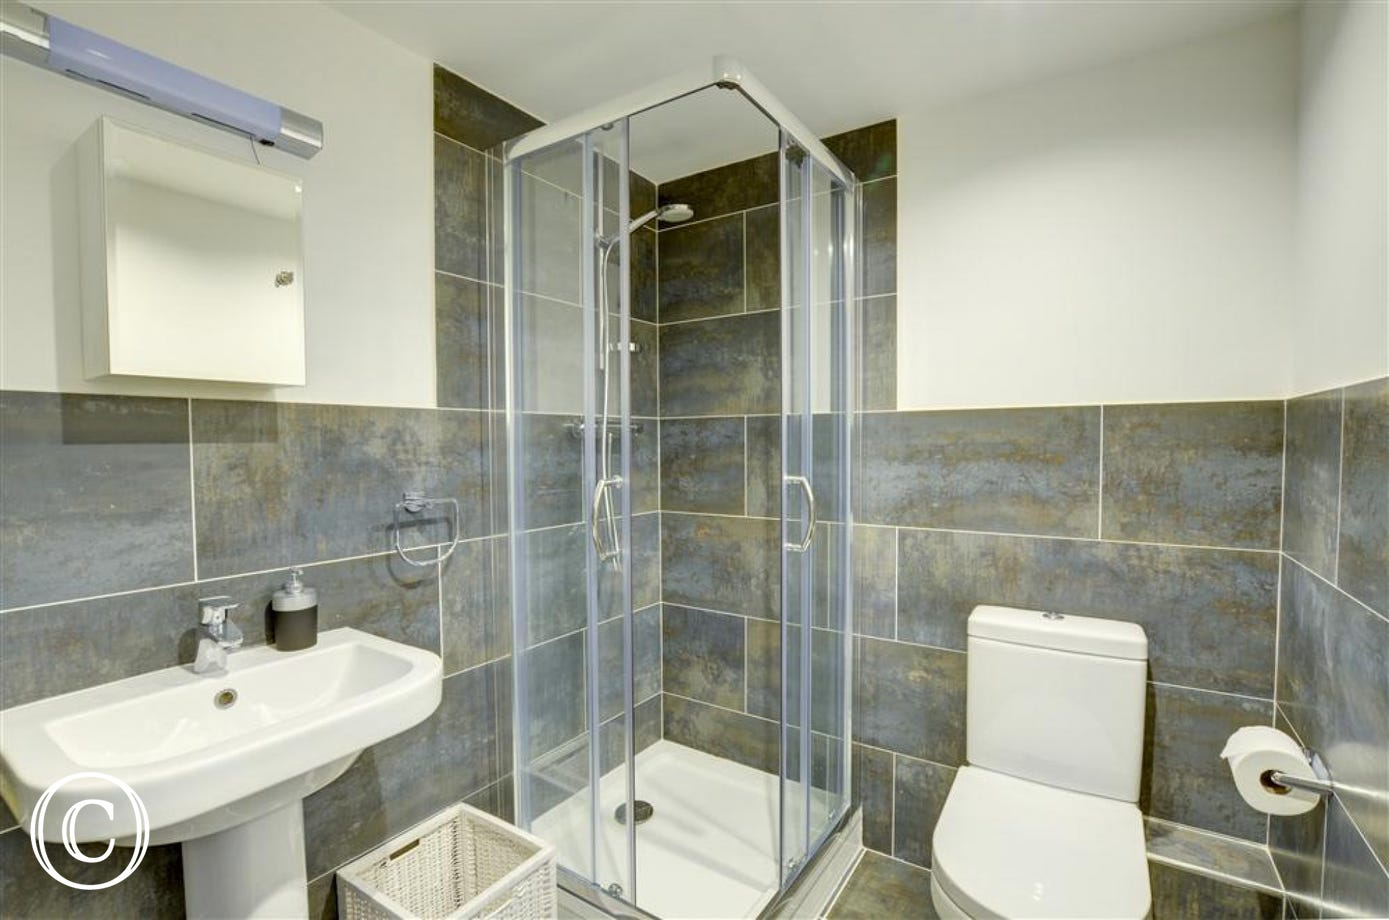 The high quality en-suite shower room with shower cubicle, wash handbasin and wc